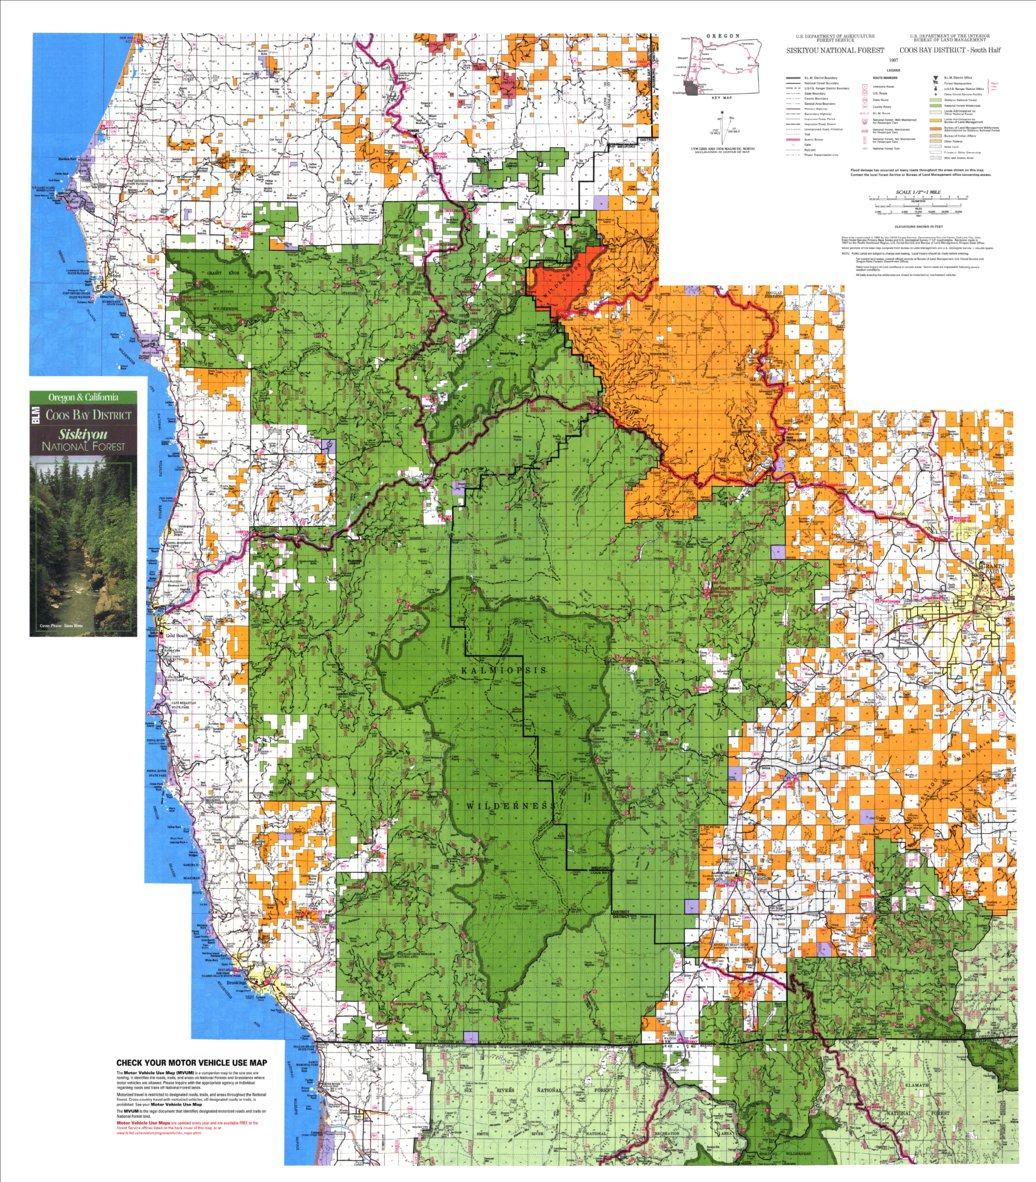 Siskiyou National Forest - Coos Bay District Recreation Map ... on shasta national forest map, carson national forest map, ashley national forest map, national forest campground map, winema national forest map, ottawa national forest map, malheur national forest map, six rivers national forest map, finger lakes national forest map, klamath national forest map, sitgreaves national forest map, wallowa-whitman national forest map, humboldt-toiyabe national forest map, mendocino national forest map, mississippi national forest map, mt. baker national forest map, green mountain national forest map, flathead national forest map, white mountain national forest map, oregon national forest map,